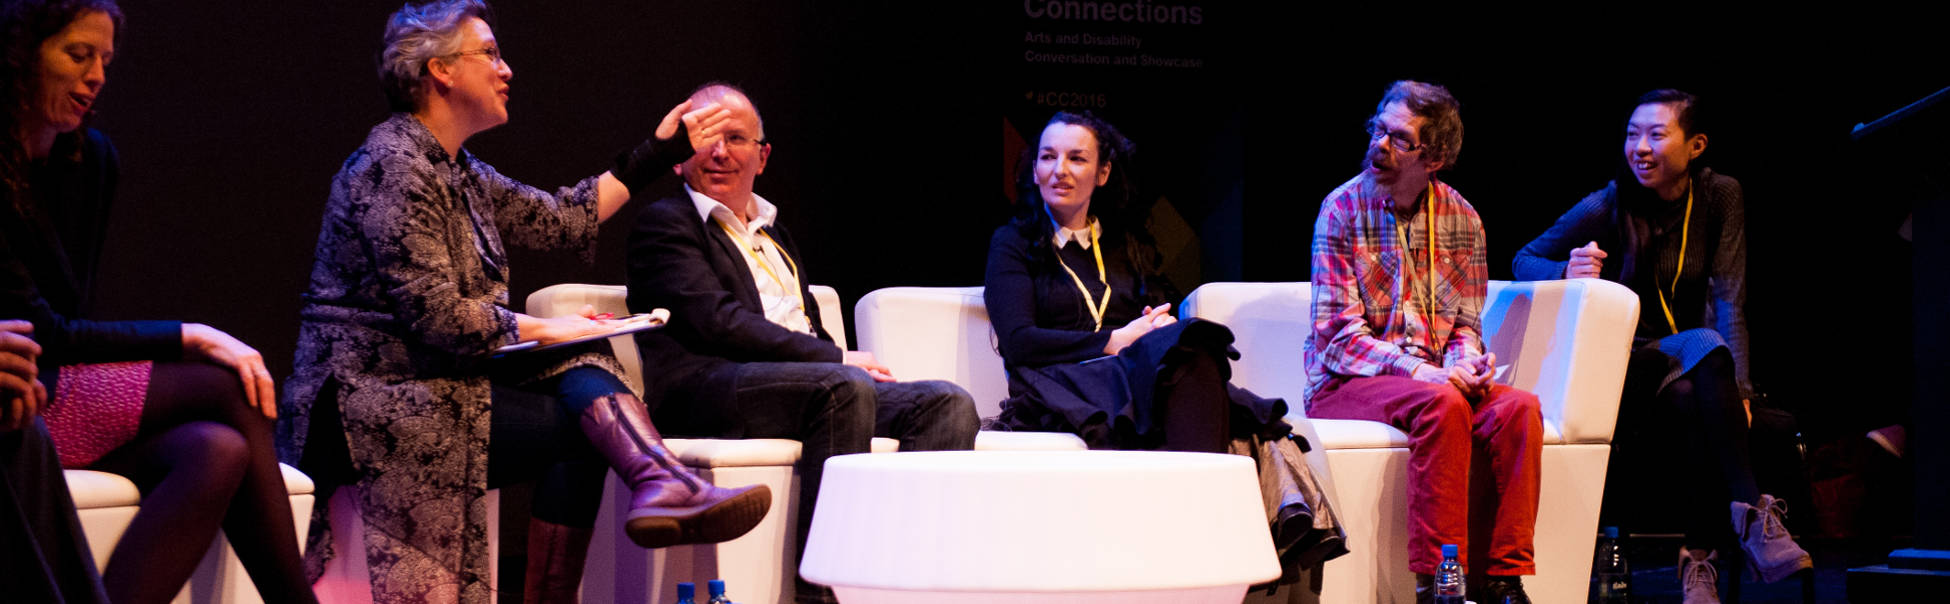 Ignite Panel at Creative Connections conference